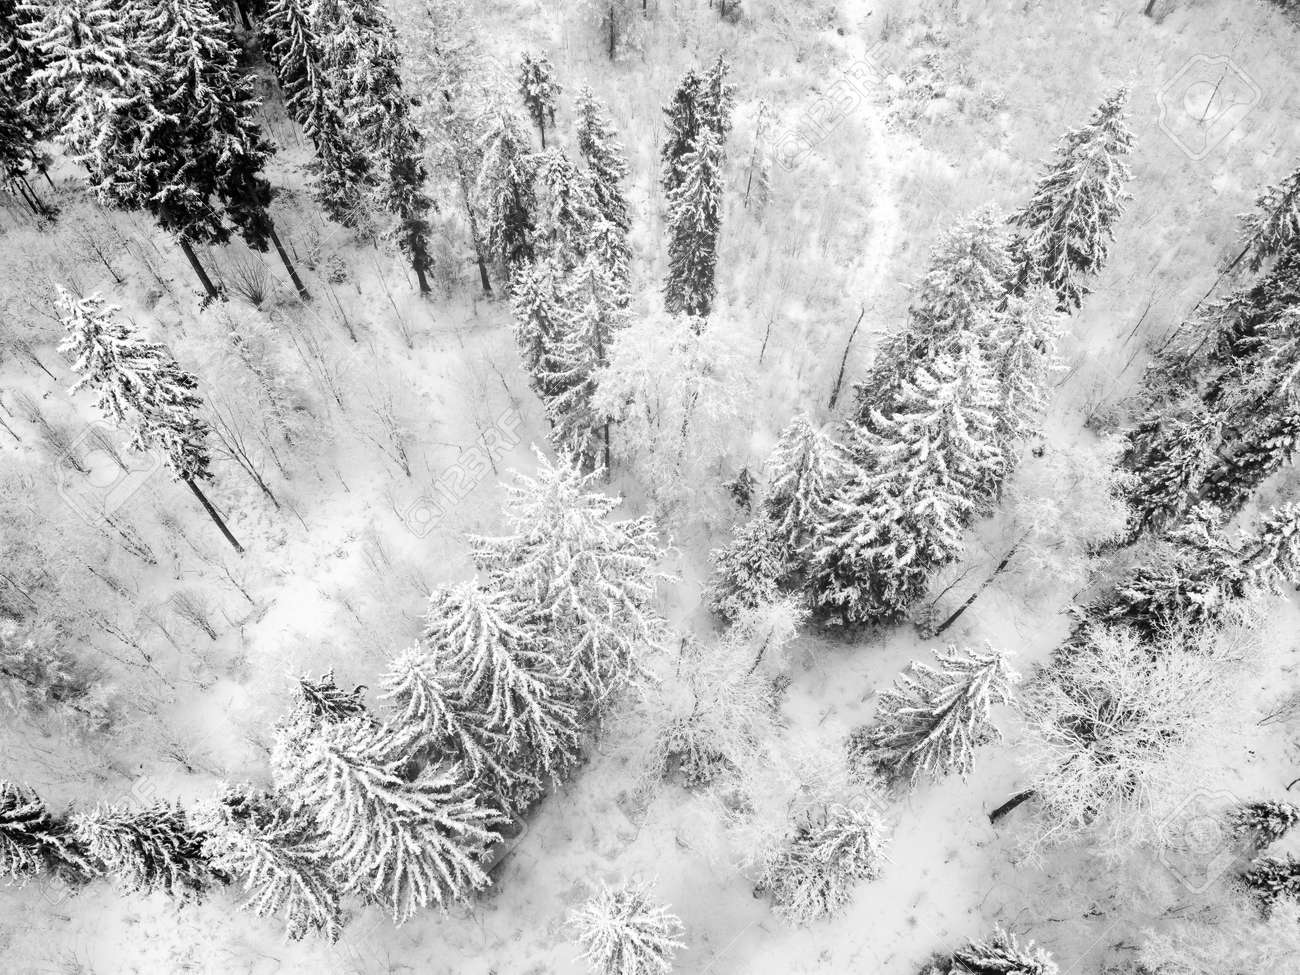 Winter forest with snowy trees, aerial view. Winter nature, aerial landscape, trees covered white snow. Black and white photography - 171676186